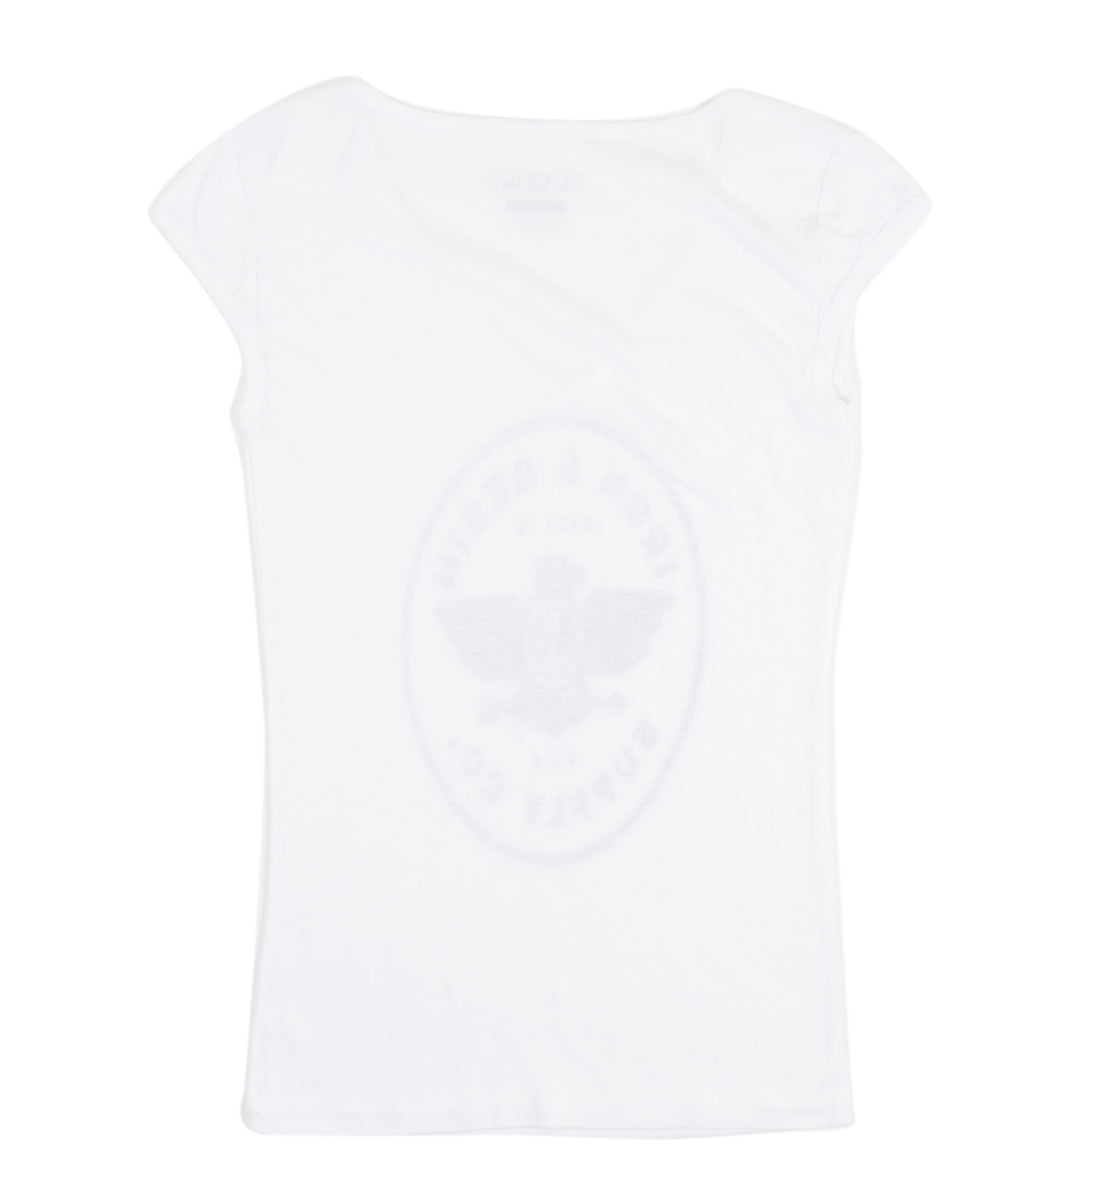 INR Eagle Supply Co. Women's Tee